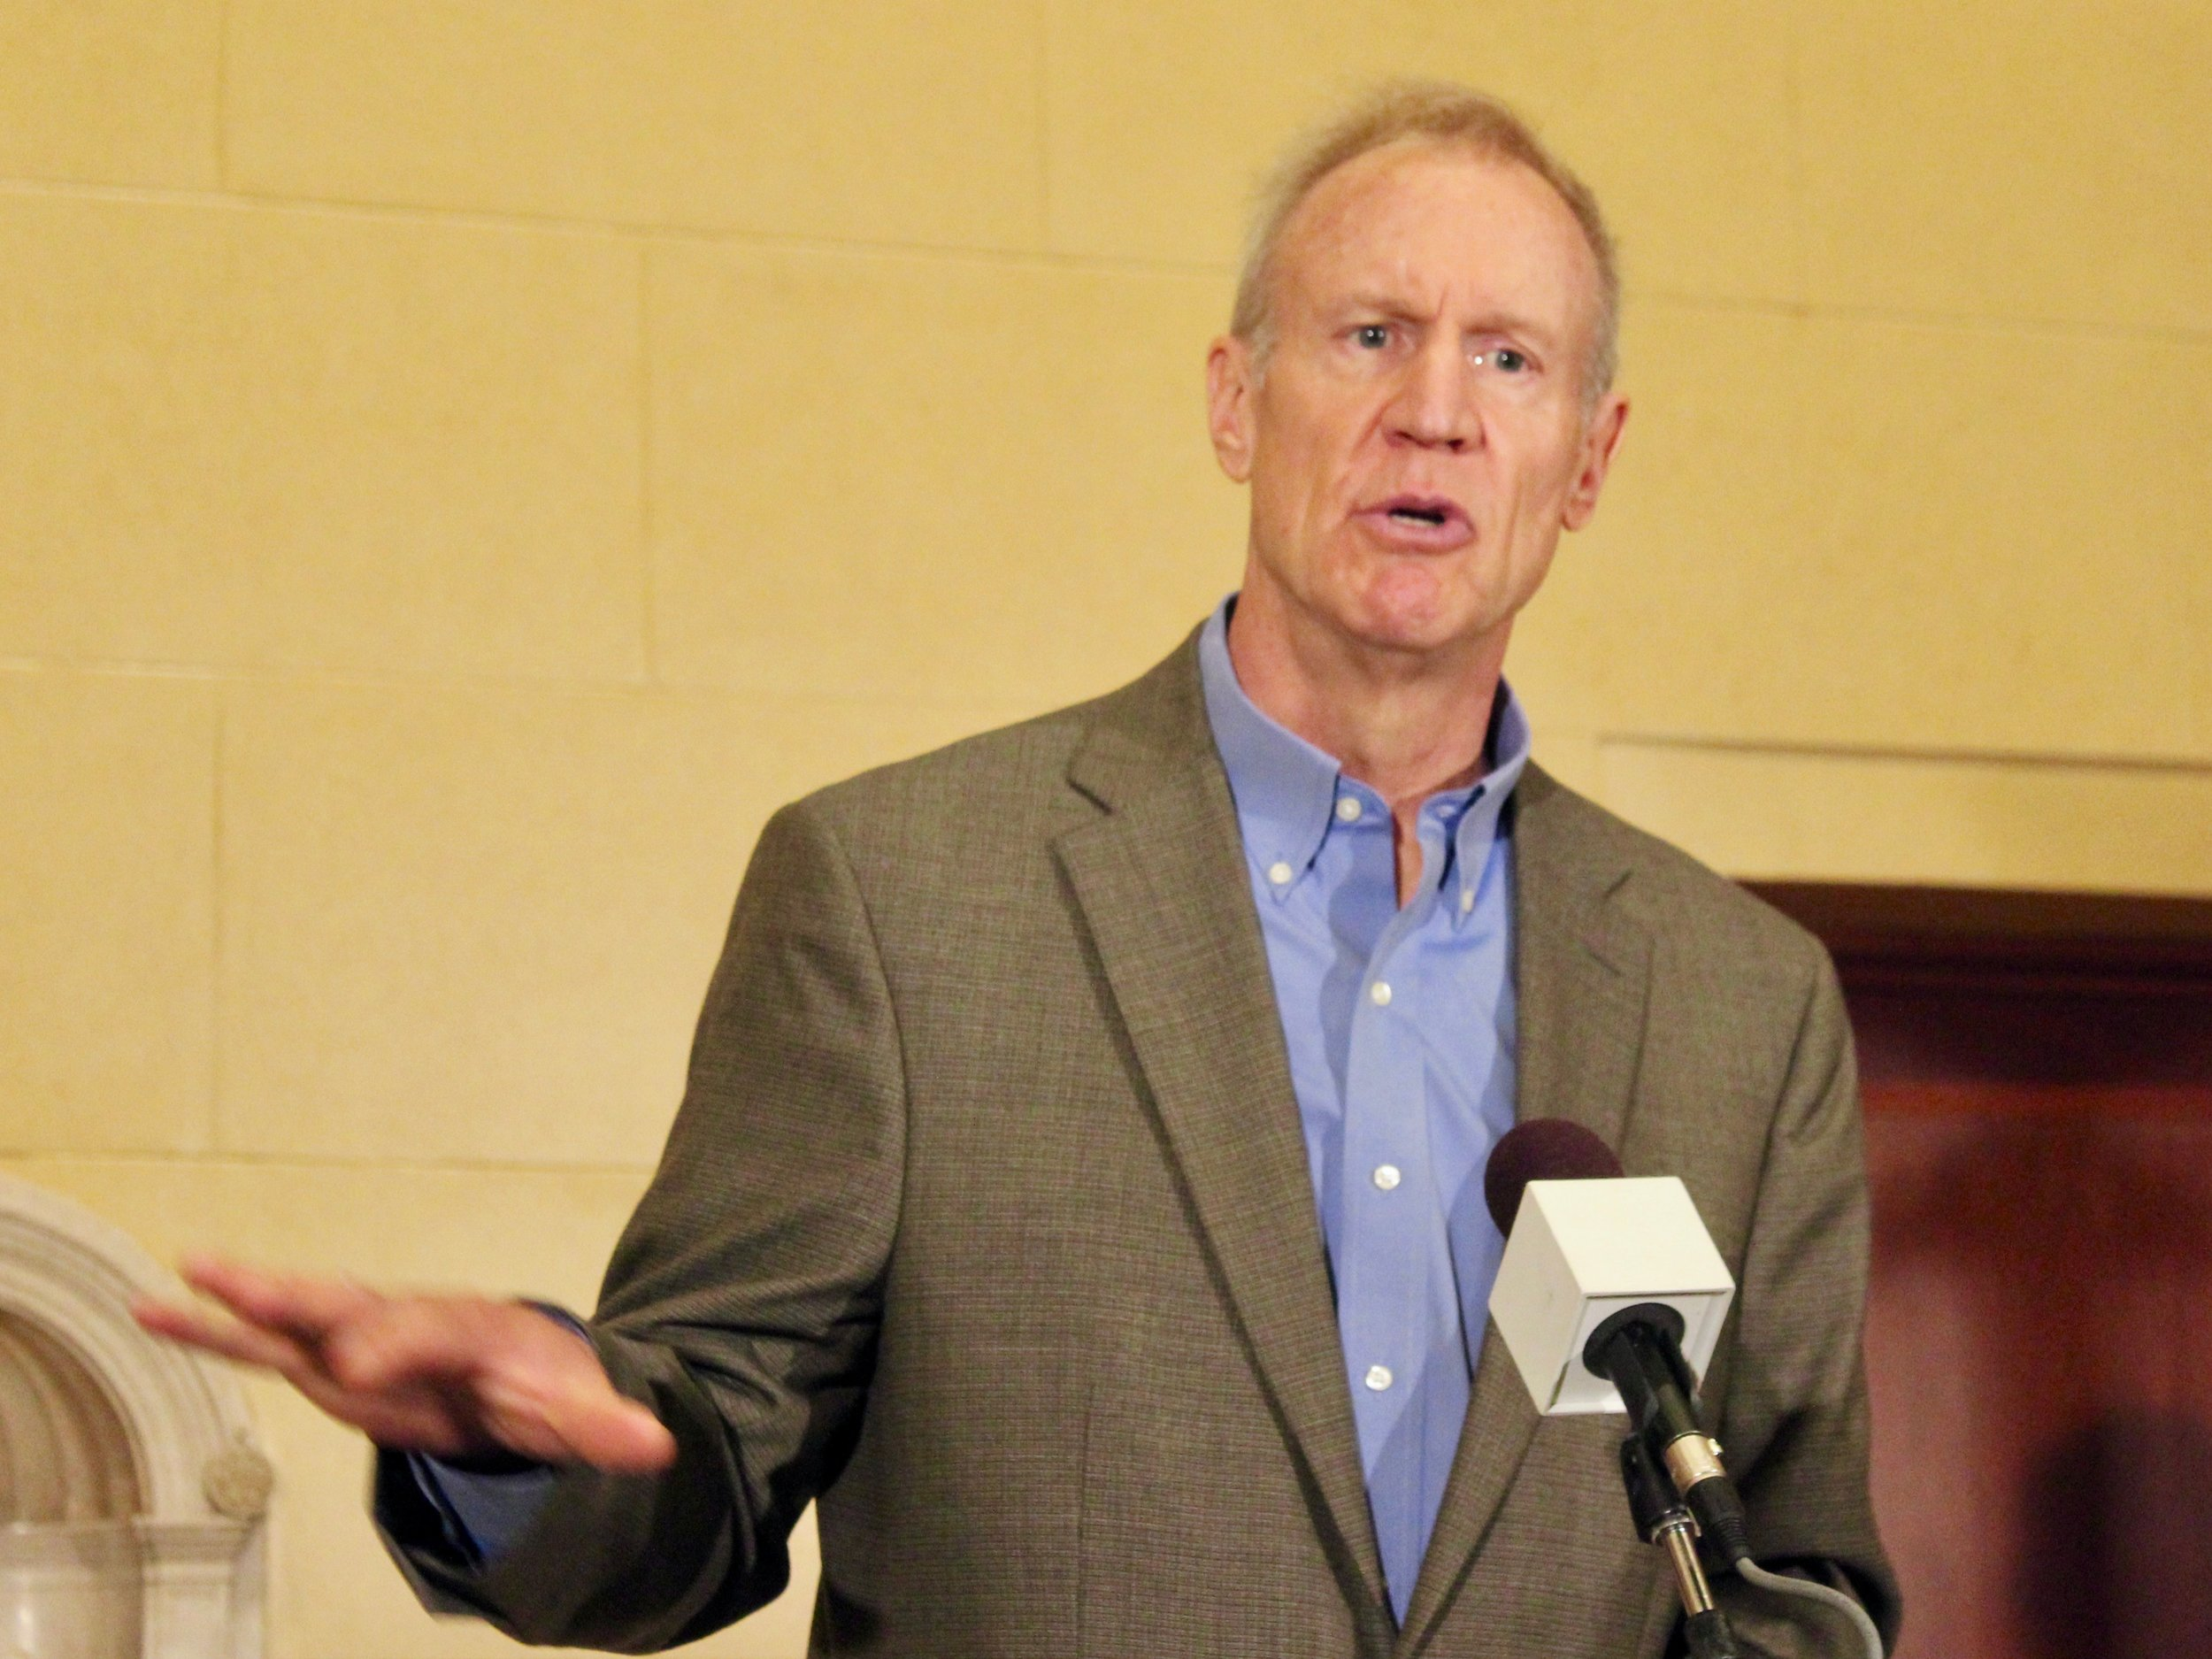 Gov. Bruce Rauner has defended the flat income tax and has suggested reducing it. (One Illinois/Ted Cox)